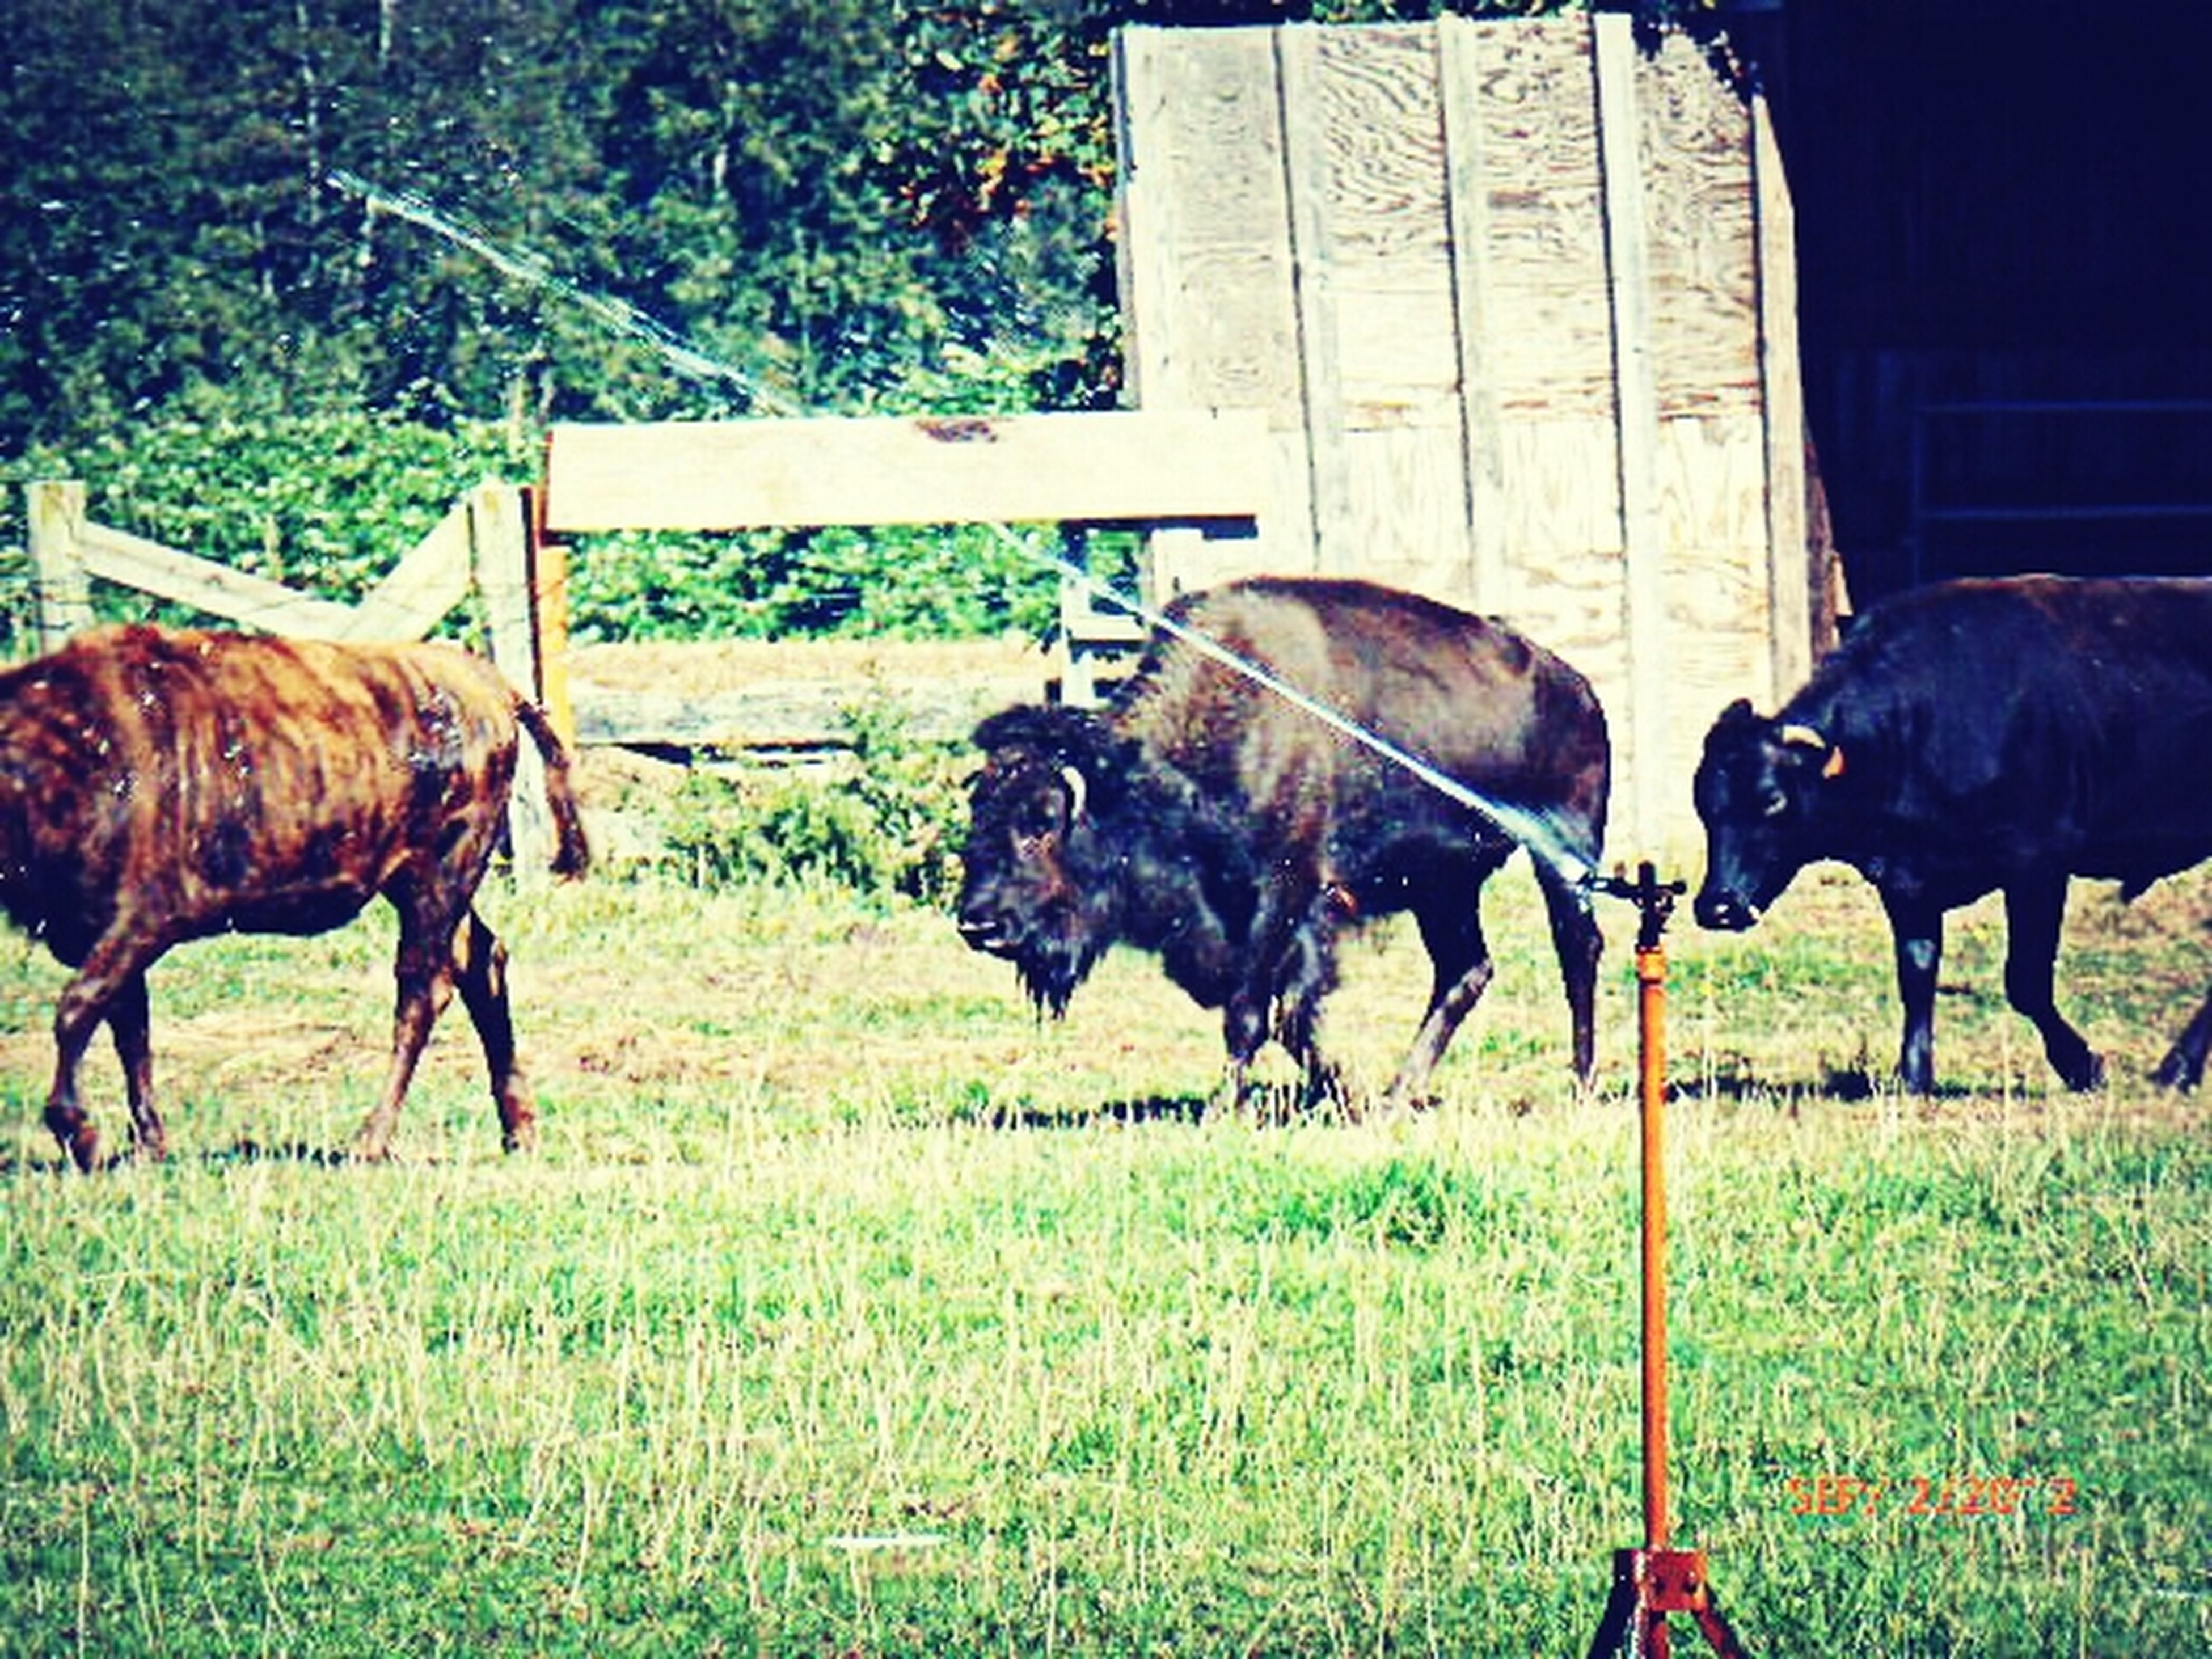 domestic animals, animal themes, livestock, horse, grass, field, mammal, cow, grazing, herbivorous, two animals, fence, grassy, medium group of animals, standing, green color, cattle, domestic cattle, working animal, three animals